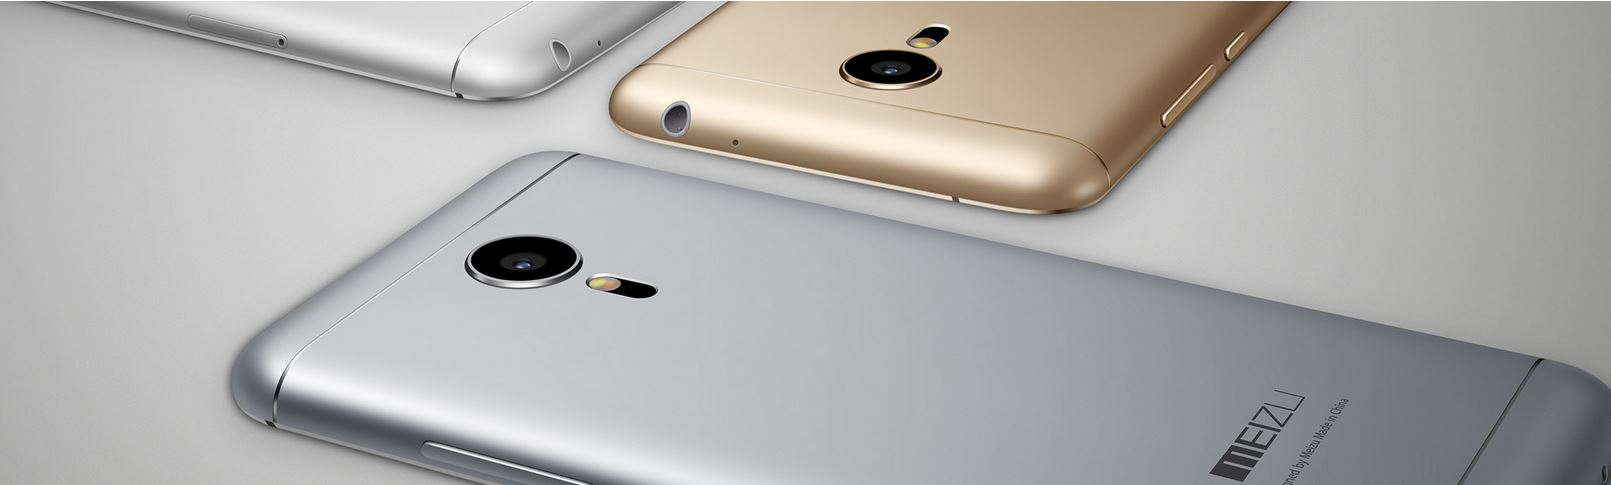 Smartphone MEIZU MX5 officially presented